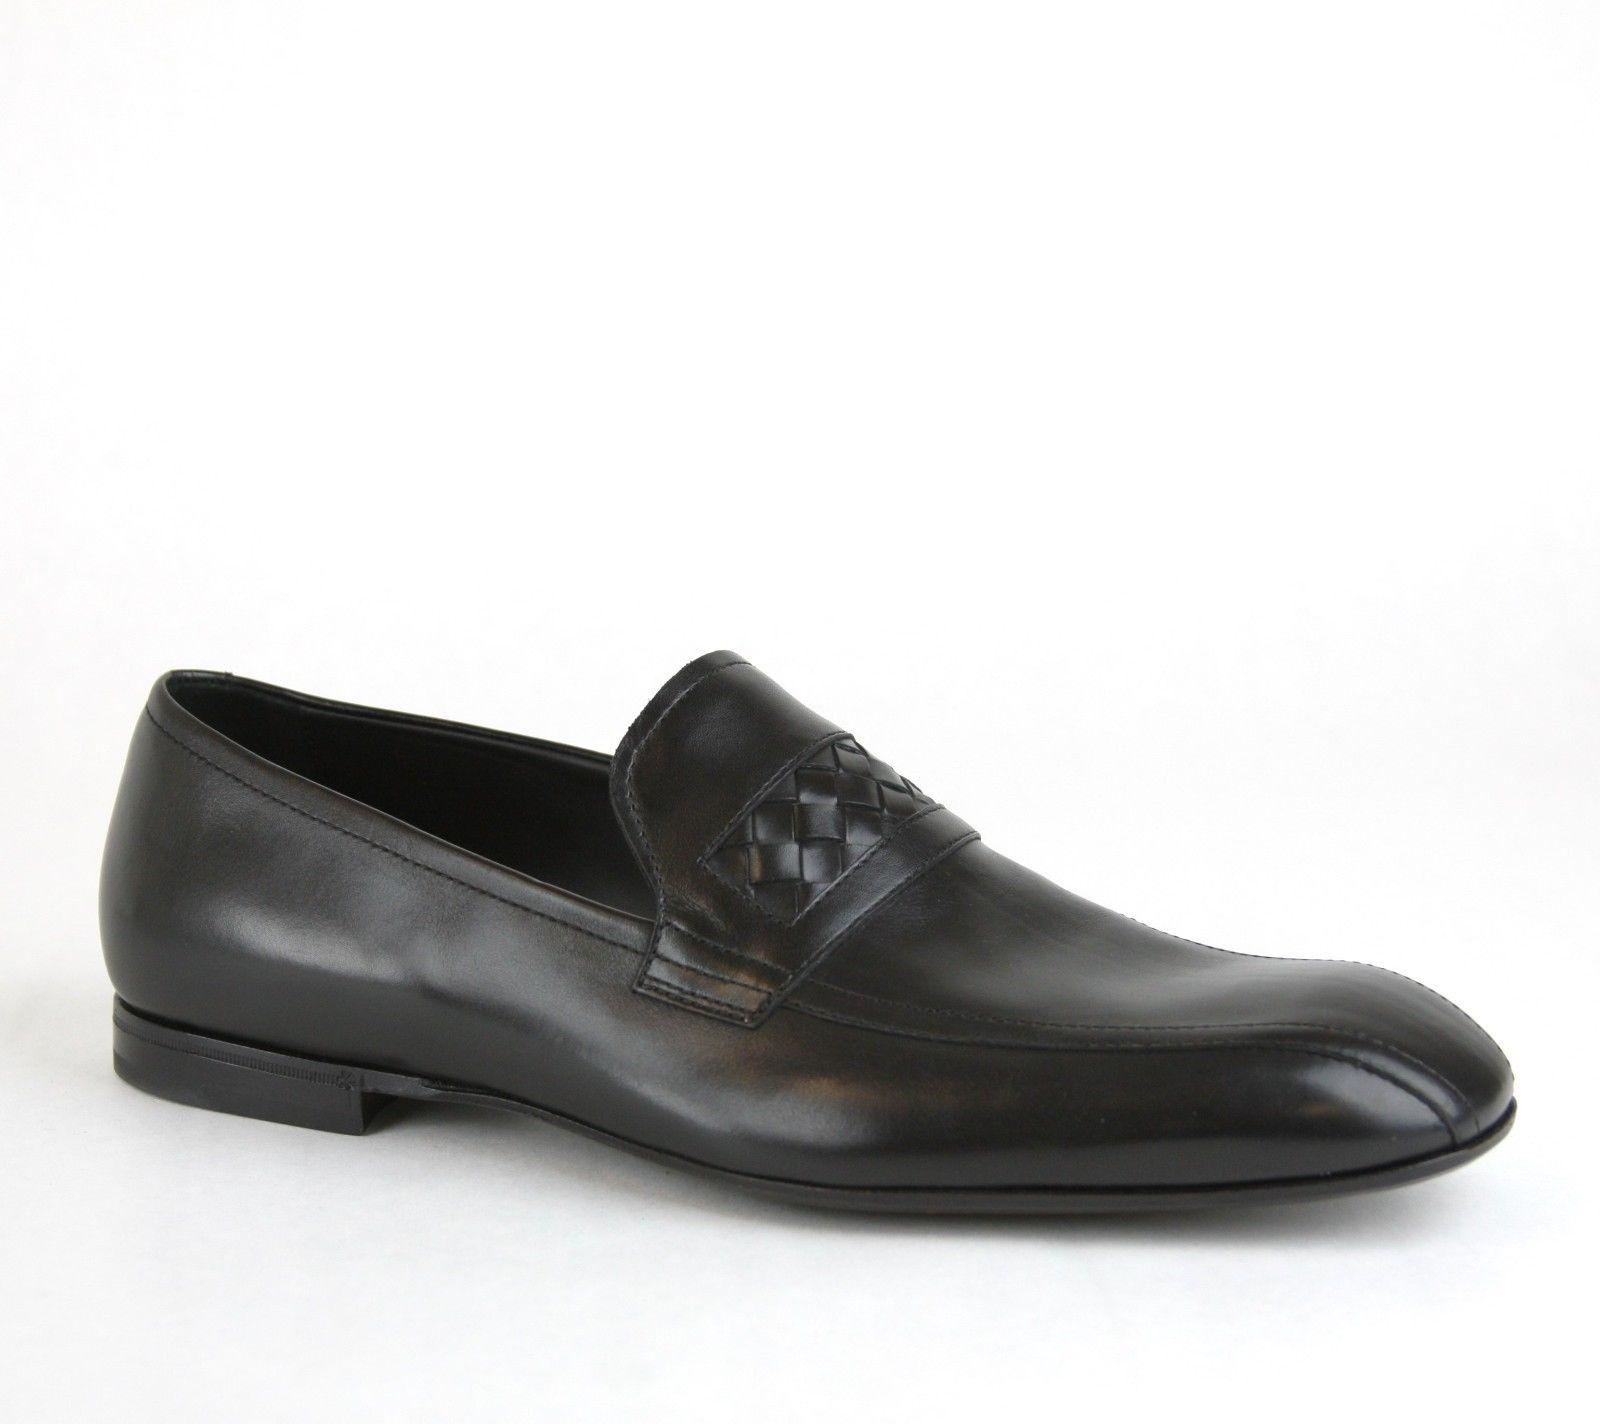 Bottega Veneta Interwoven Leather Loafers 4necjNNAJg